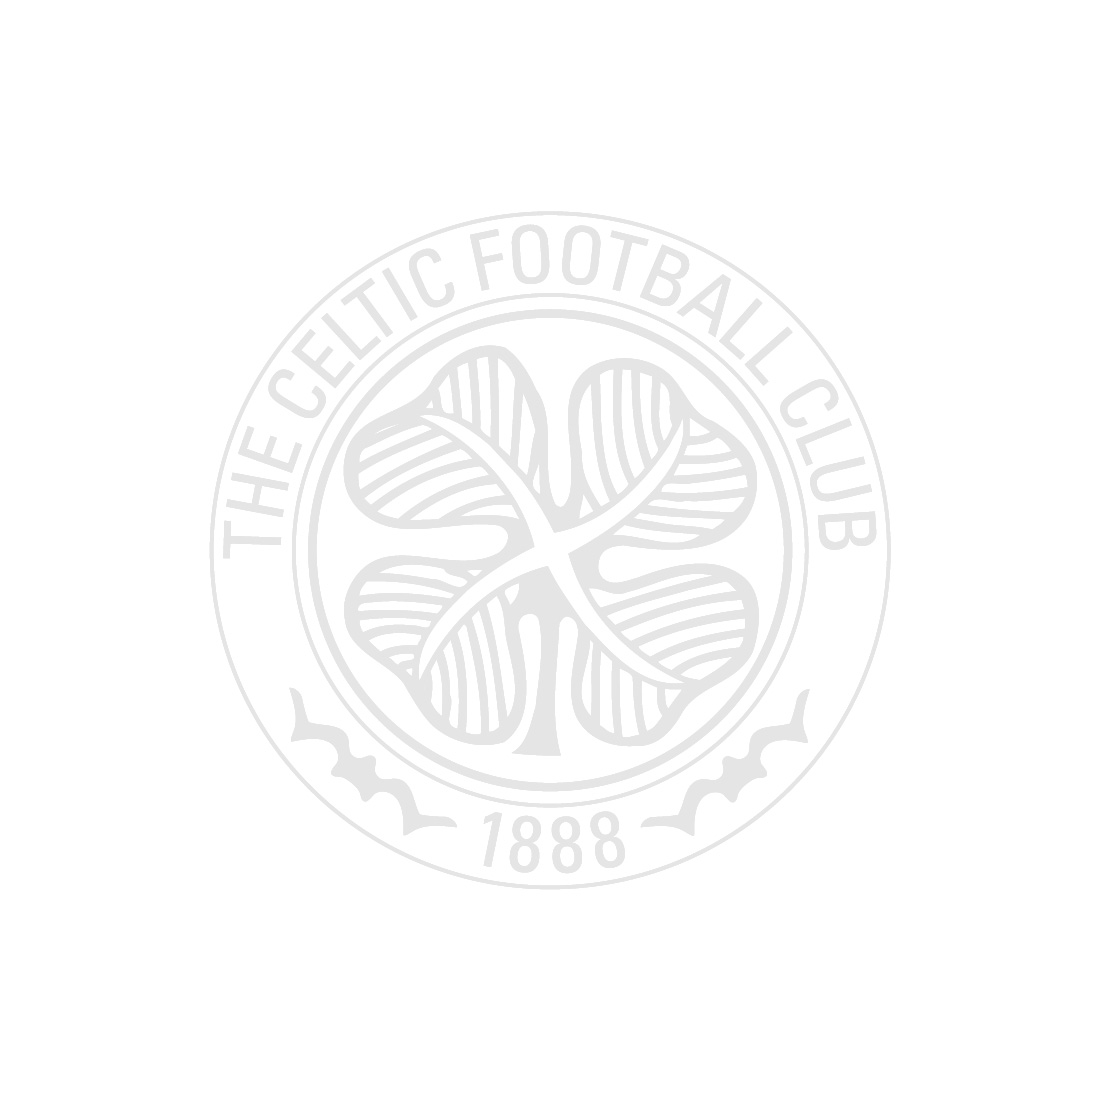 Celtic 19/20 Home Kit Pin Badge